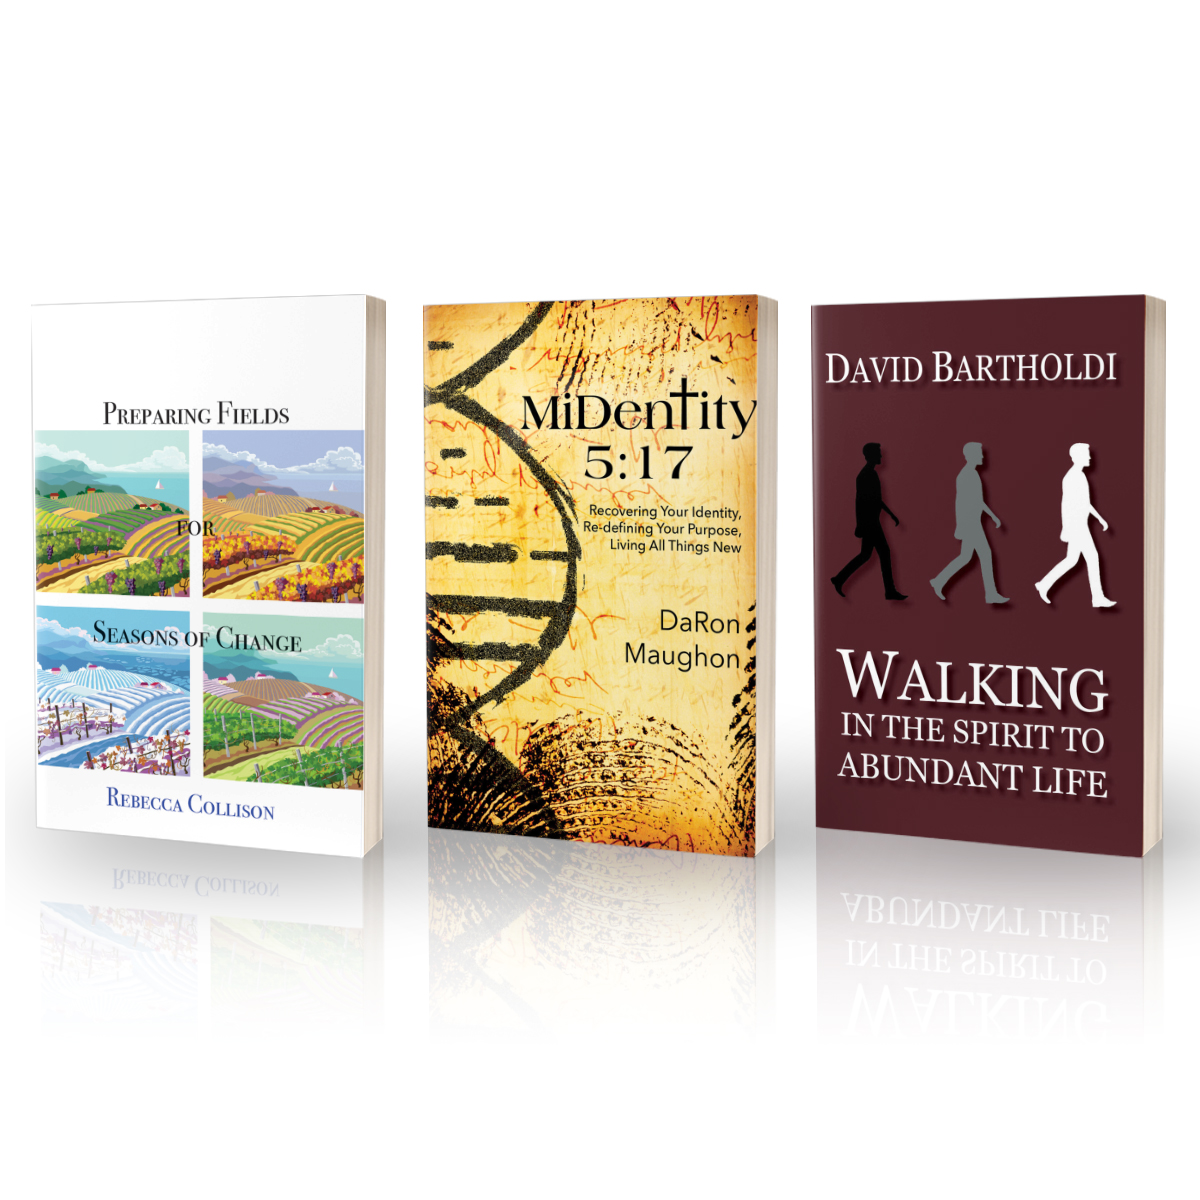 NEW BOOKS THIS WEEK!!  David Bartholdi: https://t.co/RE2tMwonXO  DaRon Maughon: https://t.co/rbYZWNhlnl Rebecca Collison : https://t.co/7RzJGKooZq  ---Have you ever dreamed of being an author? @TBN & @trilogybooks want to help! go to https://t.co/uJExWYj1TX to find out how! https://t.co/tjiCmtQ2PC